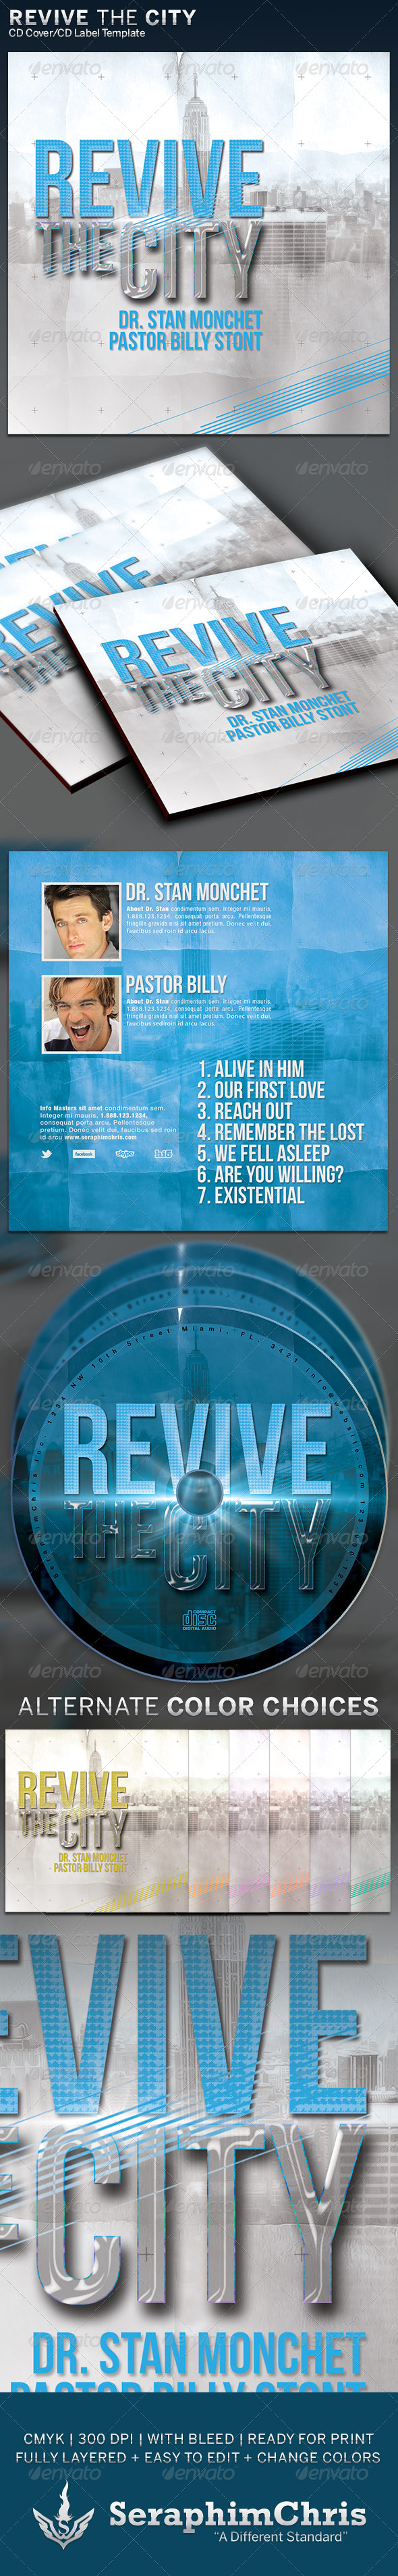 Revive the City: CD Cover Artwork Template - CD & DVD Artwork Print Templates